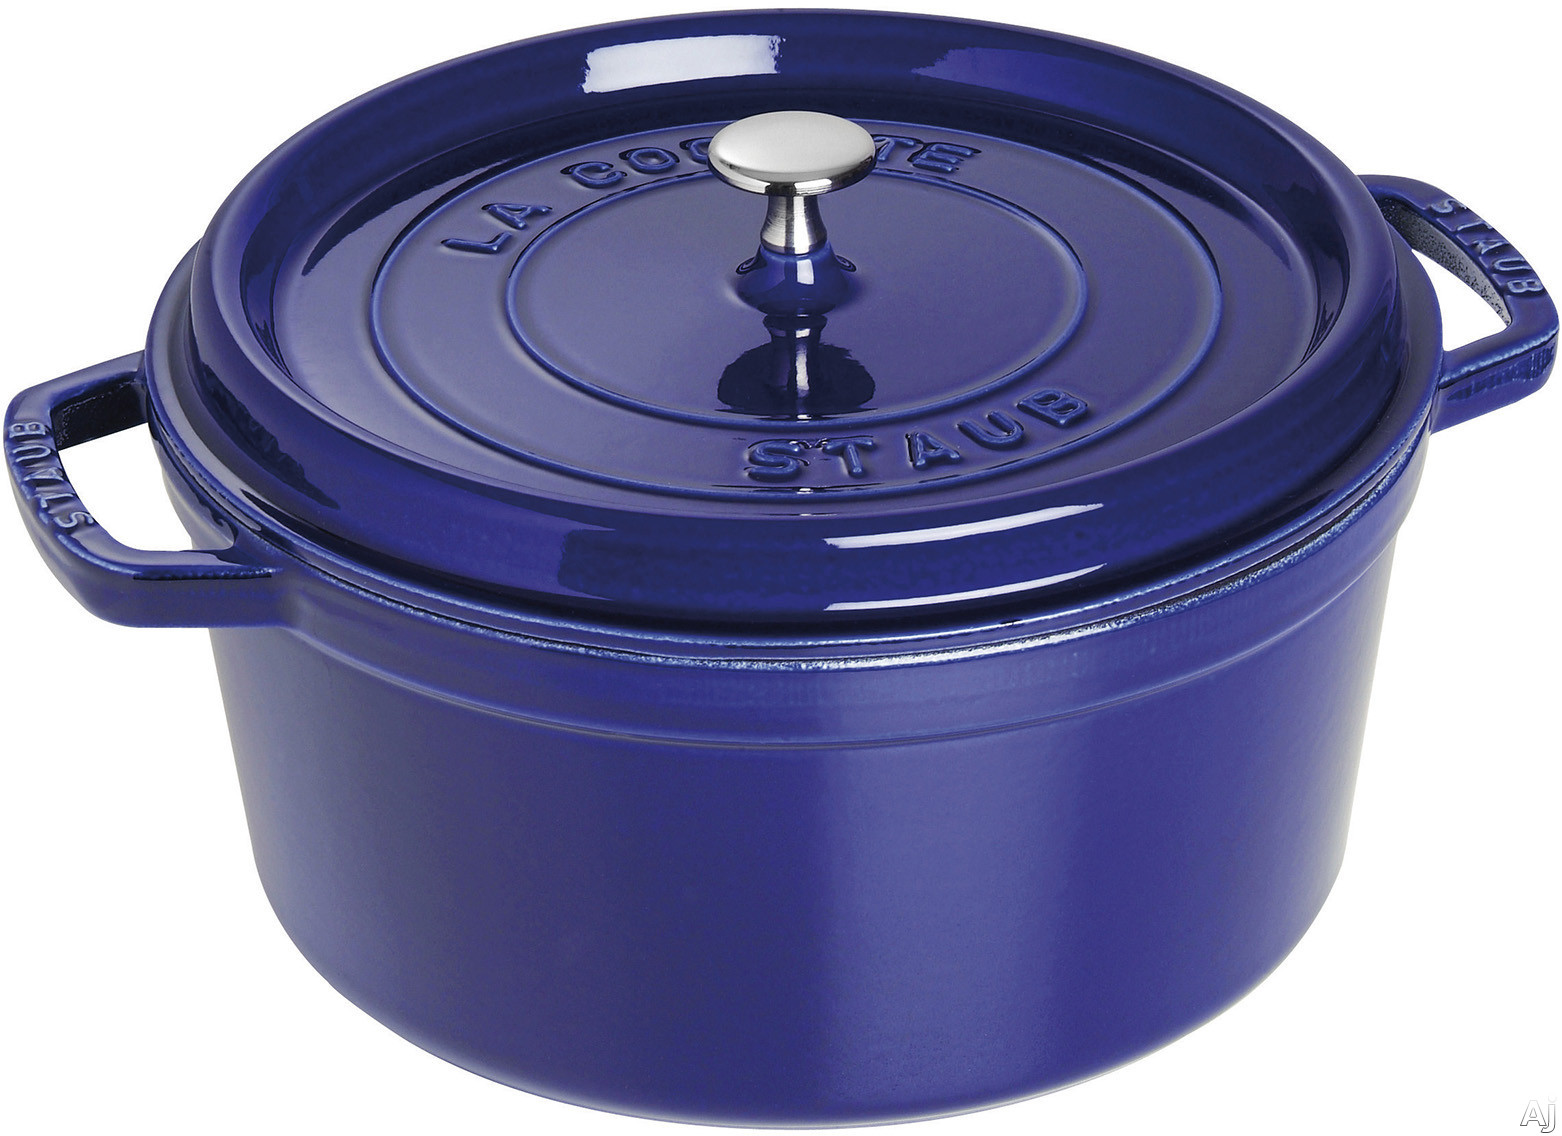 Staub 1102891 7 Quart Cast Iron Round Cocotte with Heavyweight Lid, Induction Suitable, Oven Safe, Made in France, Dishwasher Safe and Nickel Steel Knob: Dark Blue